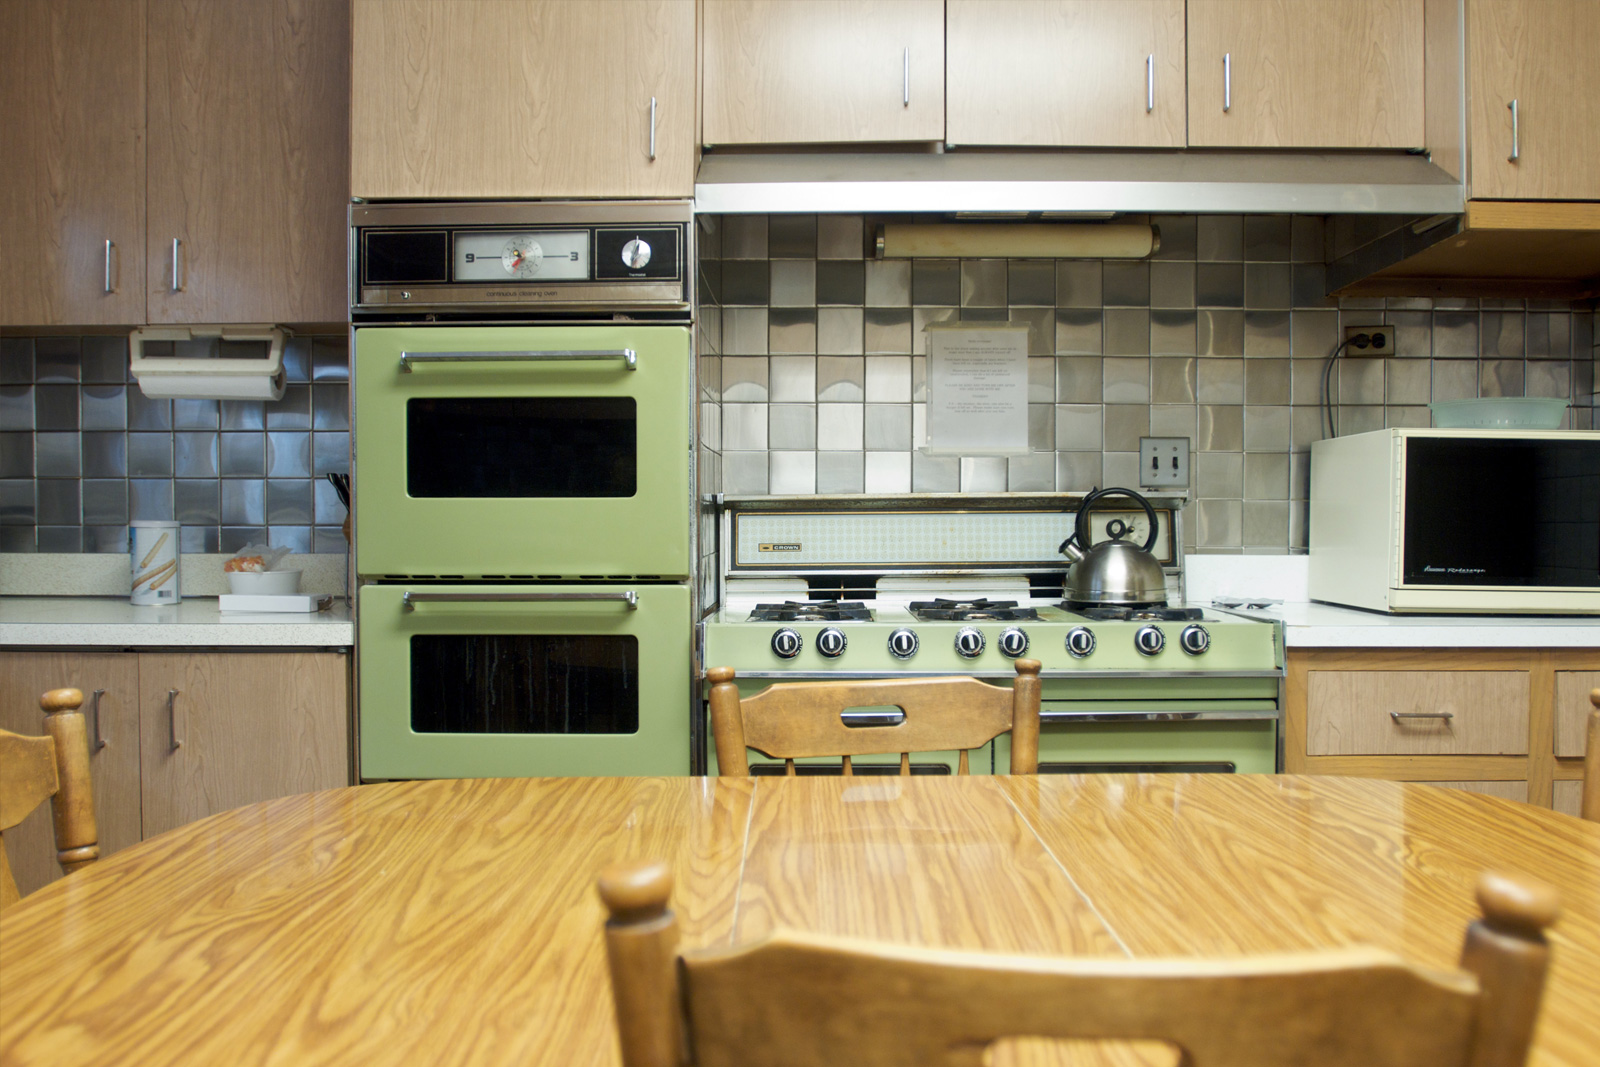 smart options kitchen flooring flooring options for kitchen Avocado green kitchen